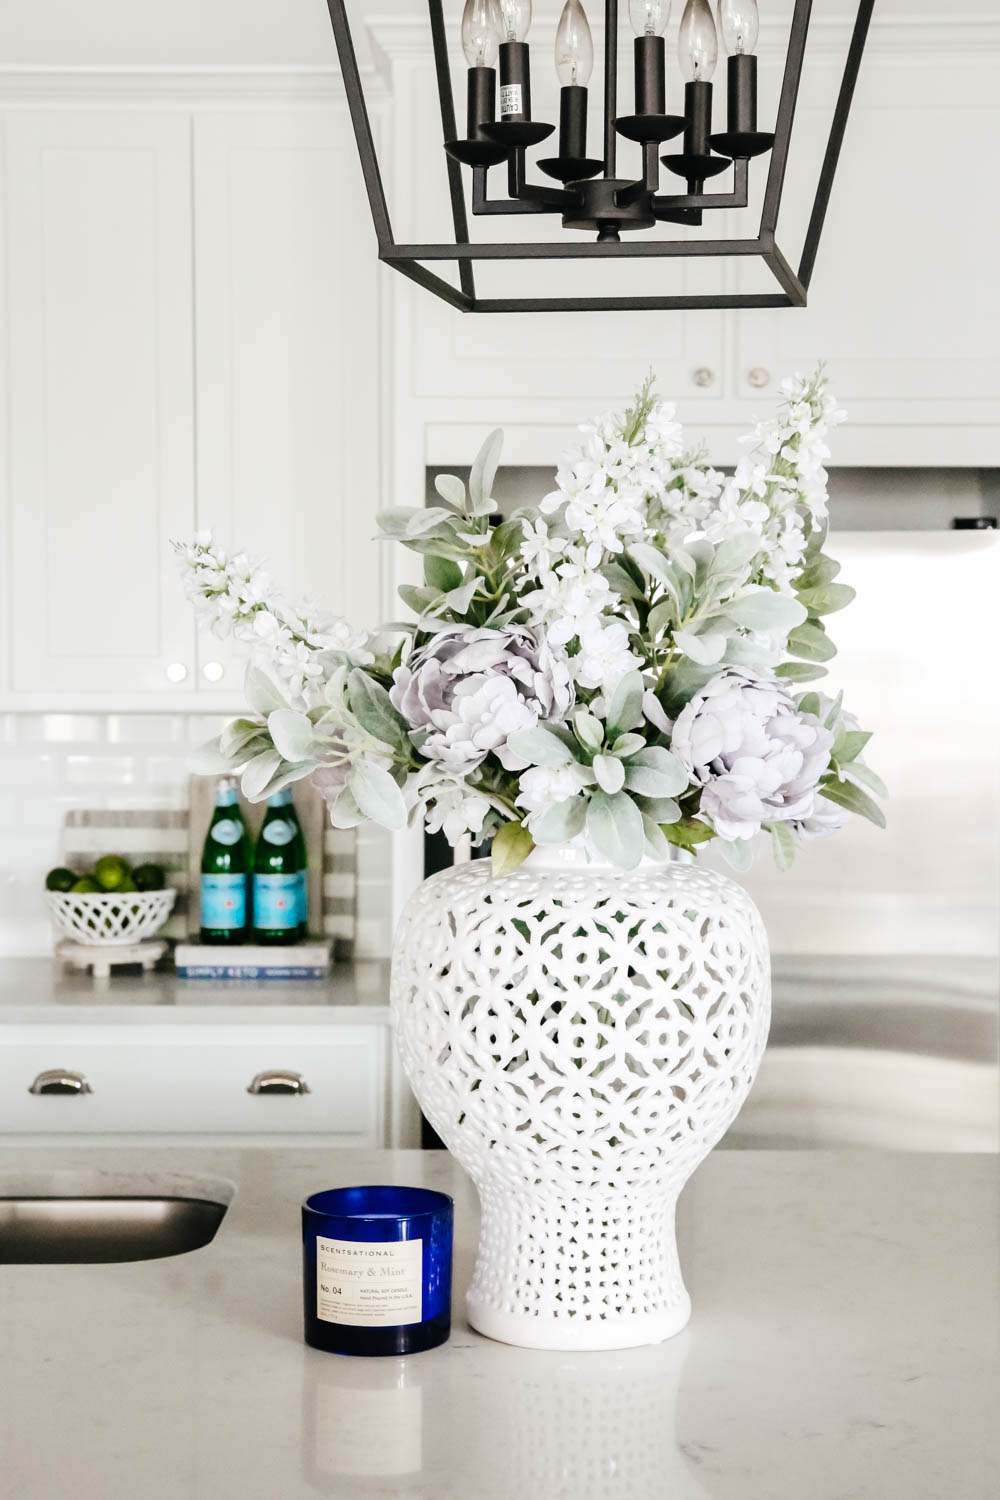 White lattice vase with flowers on white counter top. #whitekitchen #kitchendecor #kitchenideas #ABlissfulNest